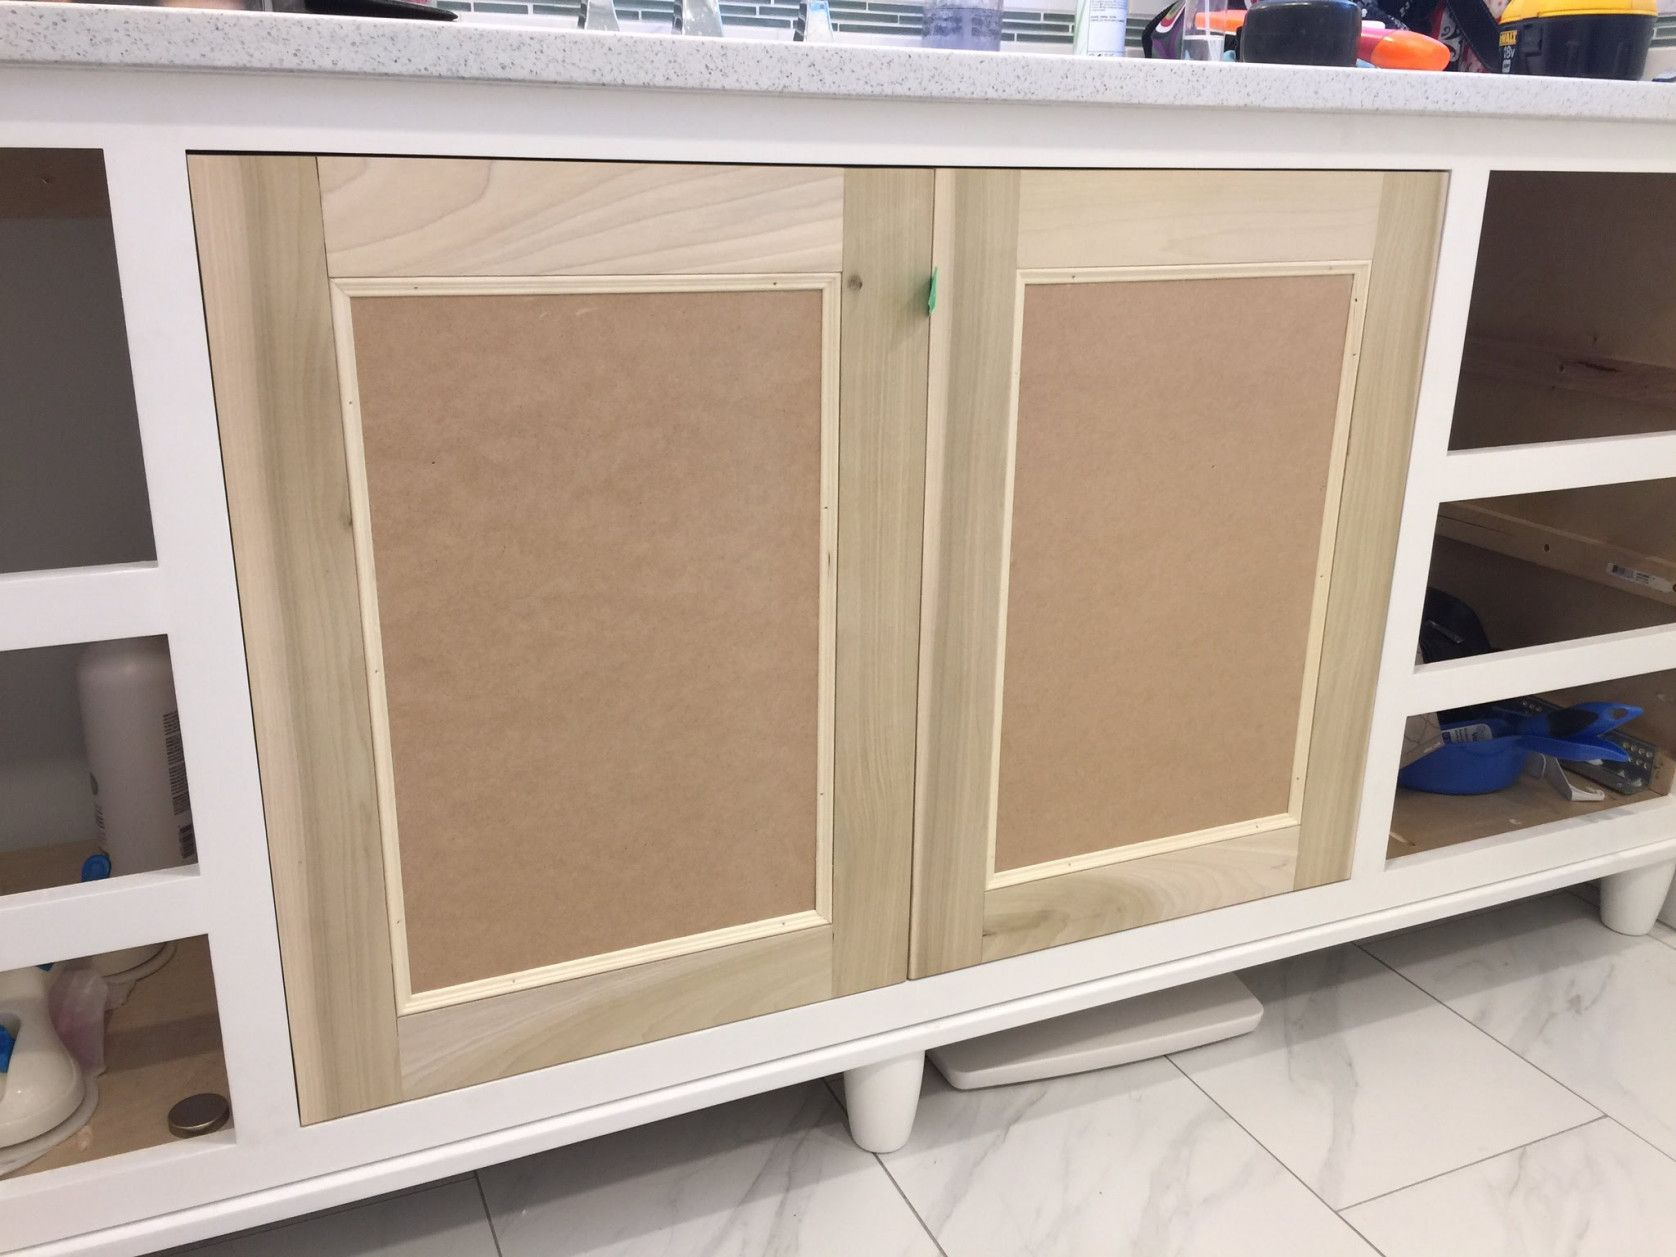 77 Making Shaker Style Cabinet Doors Kitchen Cabinets Countertops Ideas Check More At